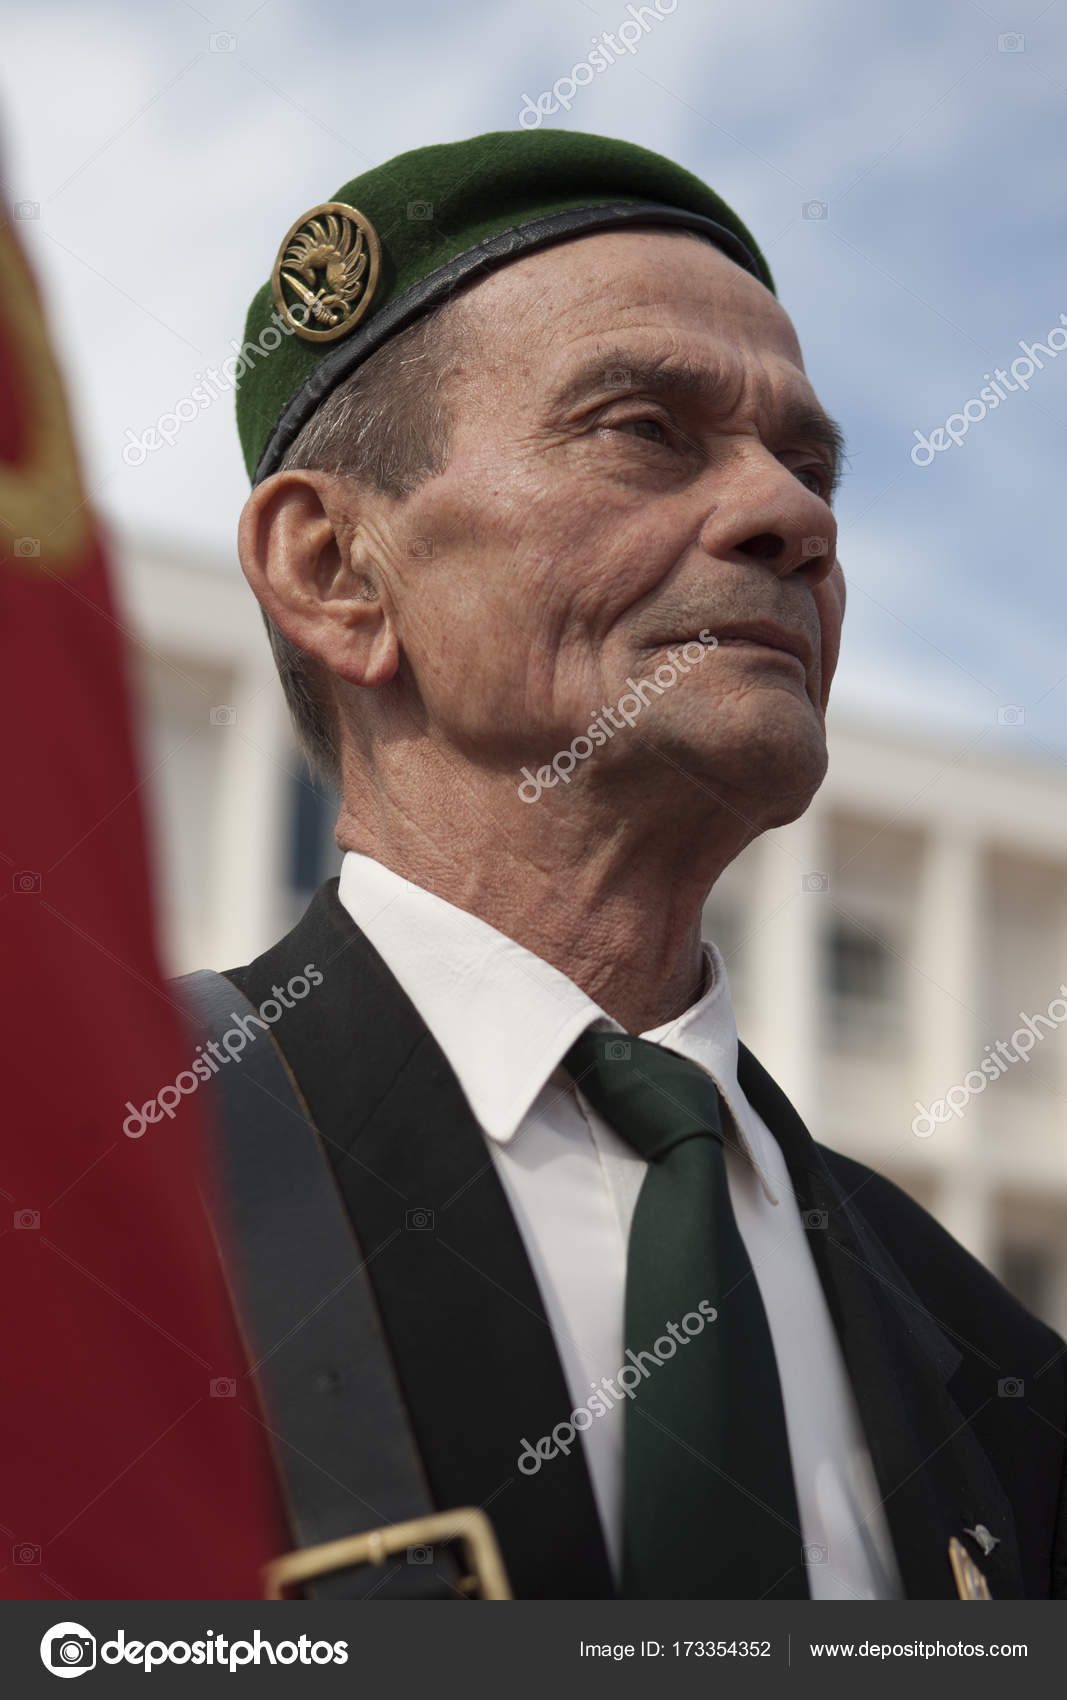 Aubagne France May 11 2012 Portrait Of A Veteran Of The French